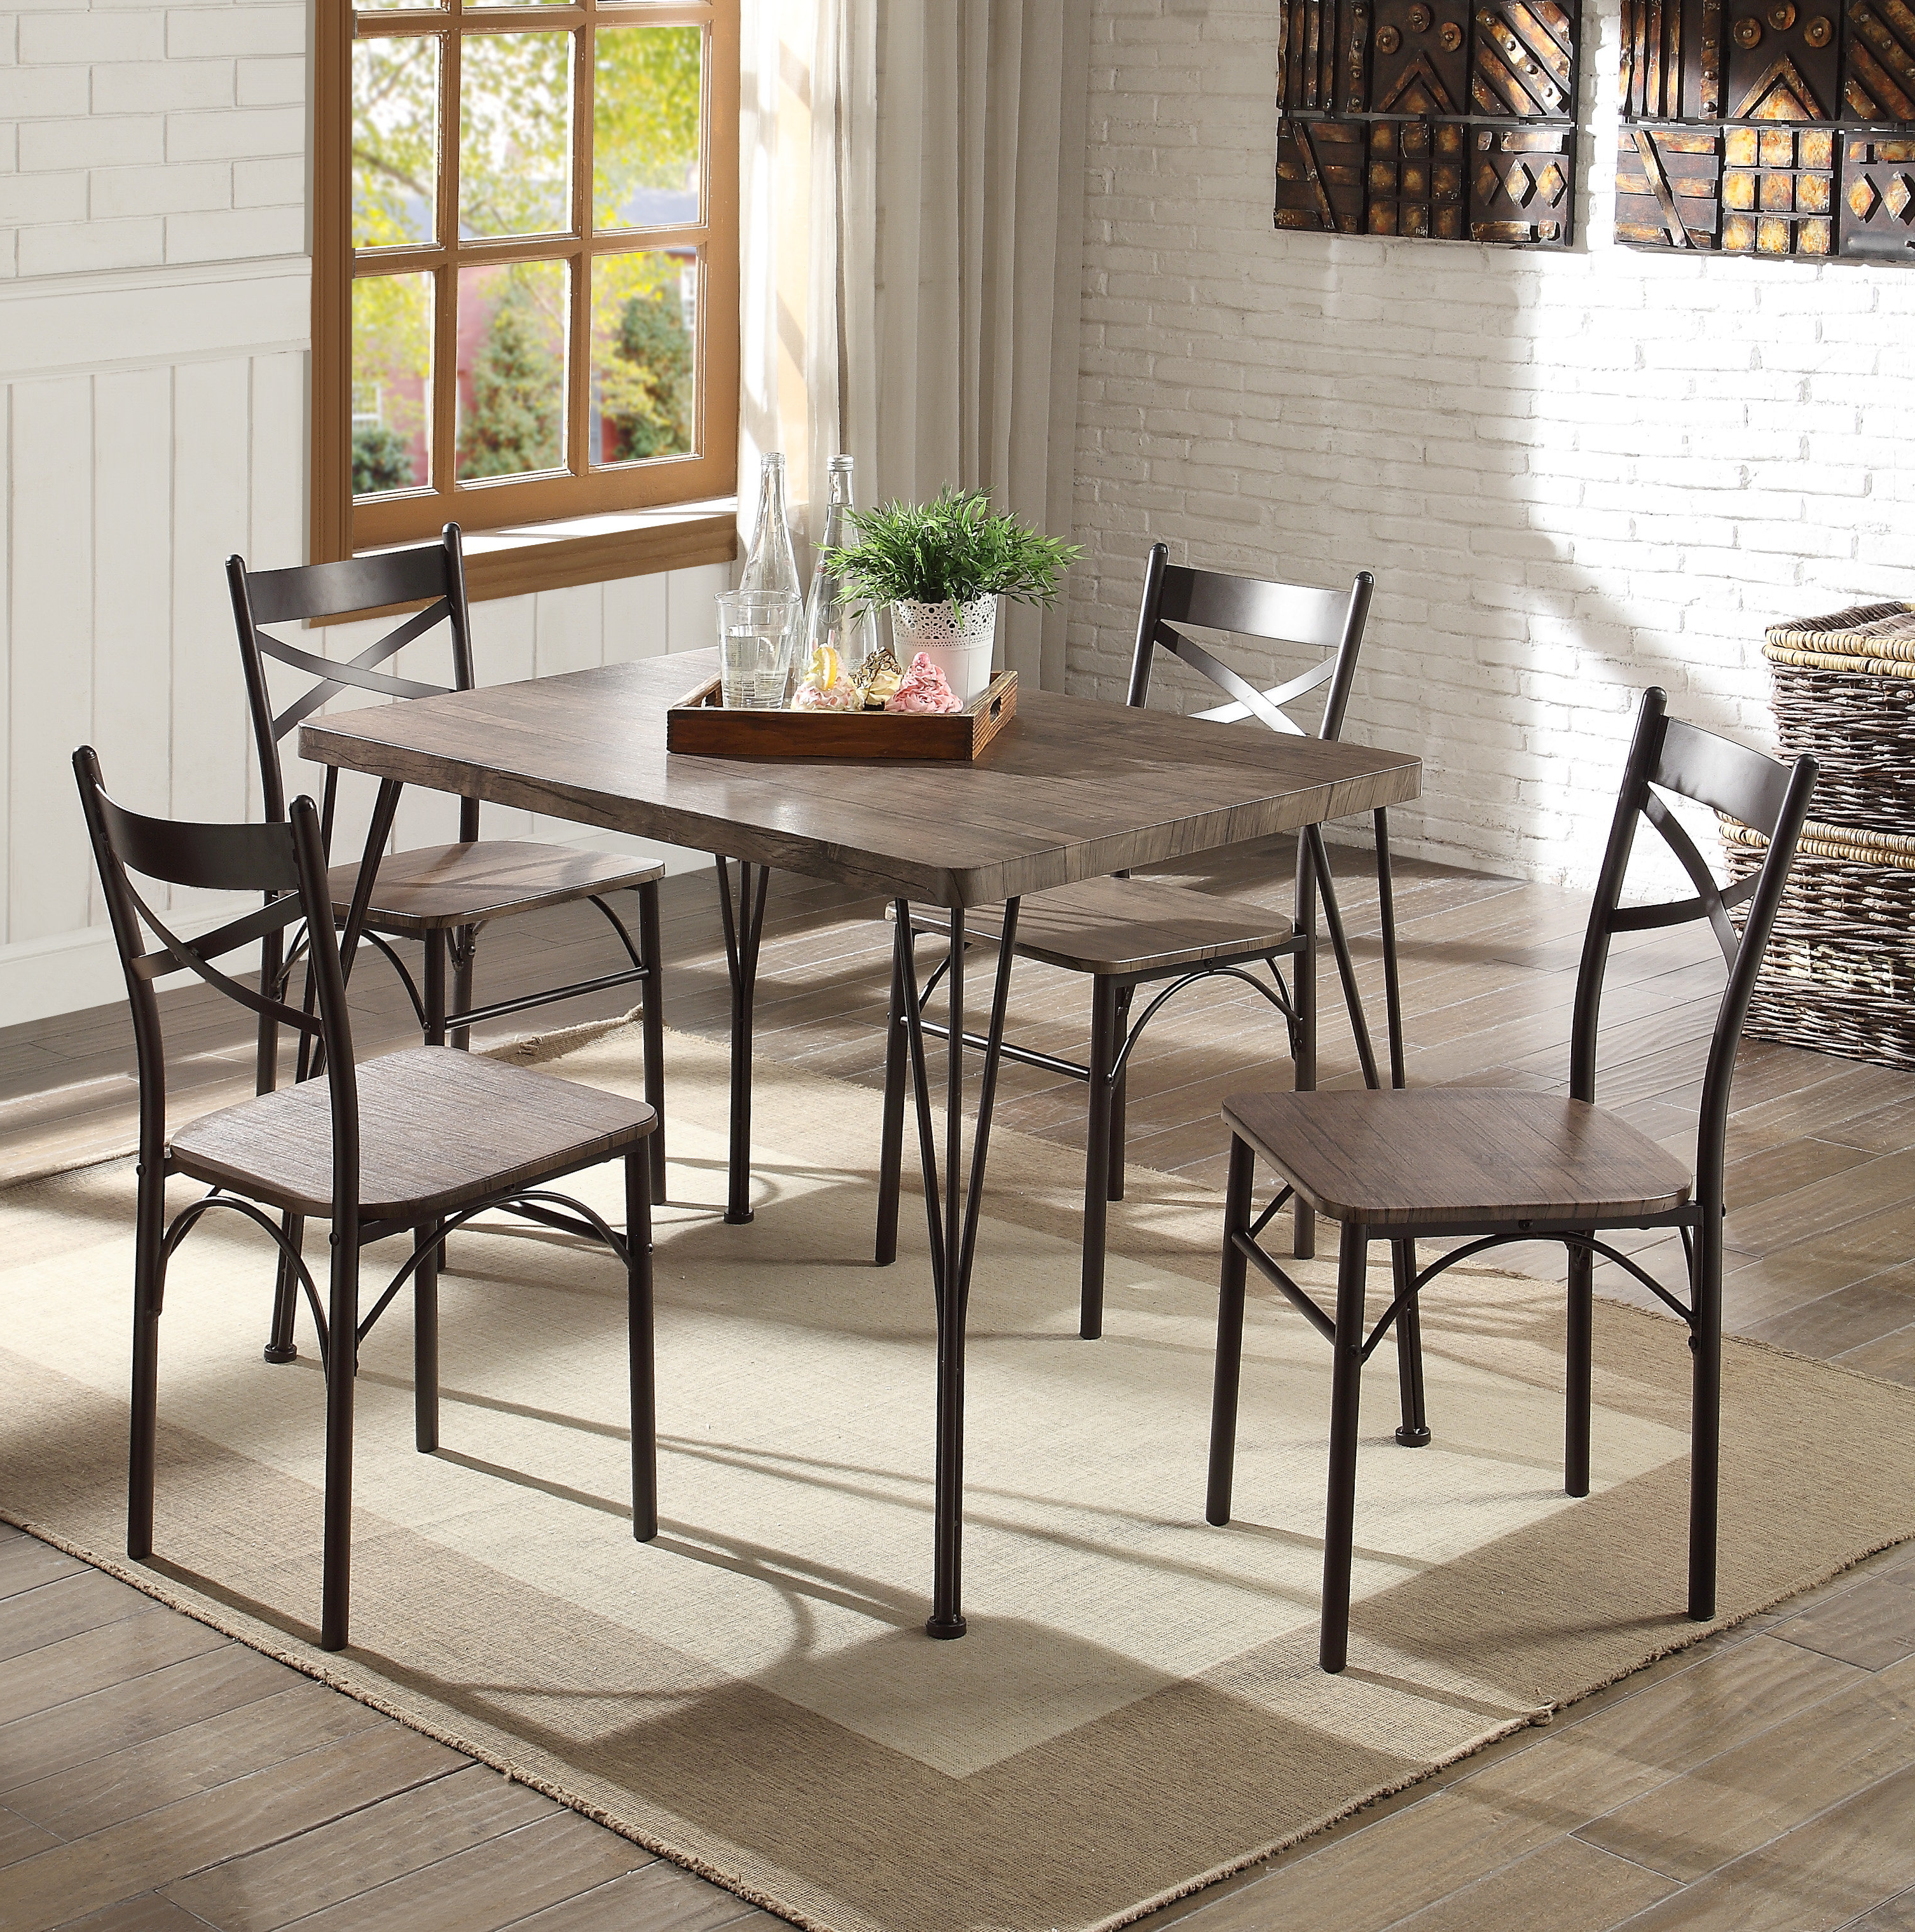 Widely Used Emmeline 5 Piece Breakfast Nook Dining Sets Throughout Andover Mills Middleport 5 Piece Dining Set & Reviews (View 25 of 25)